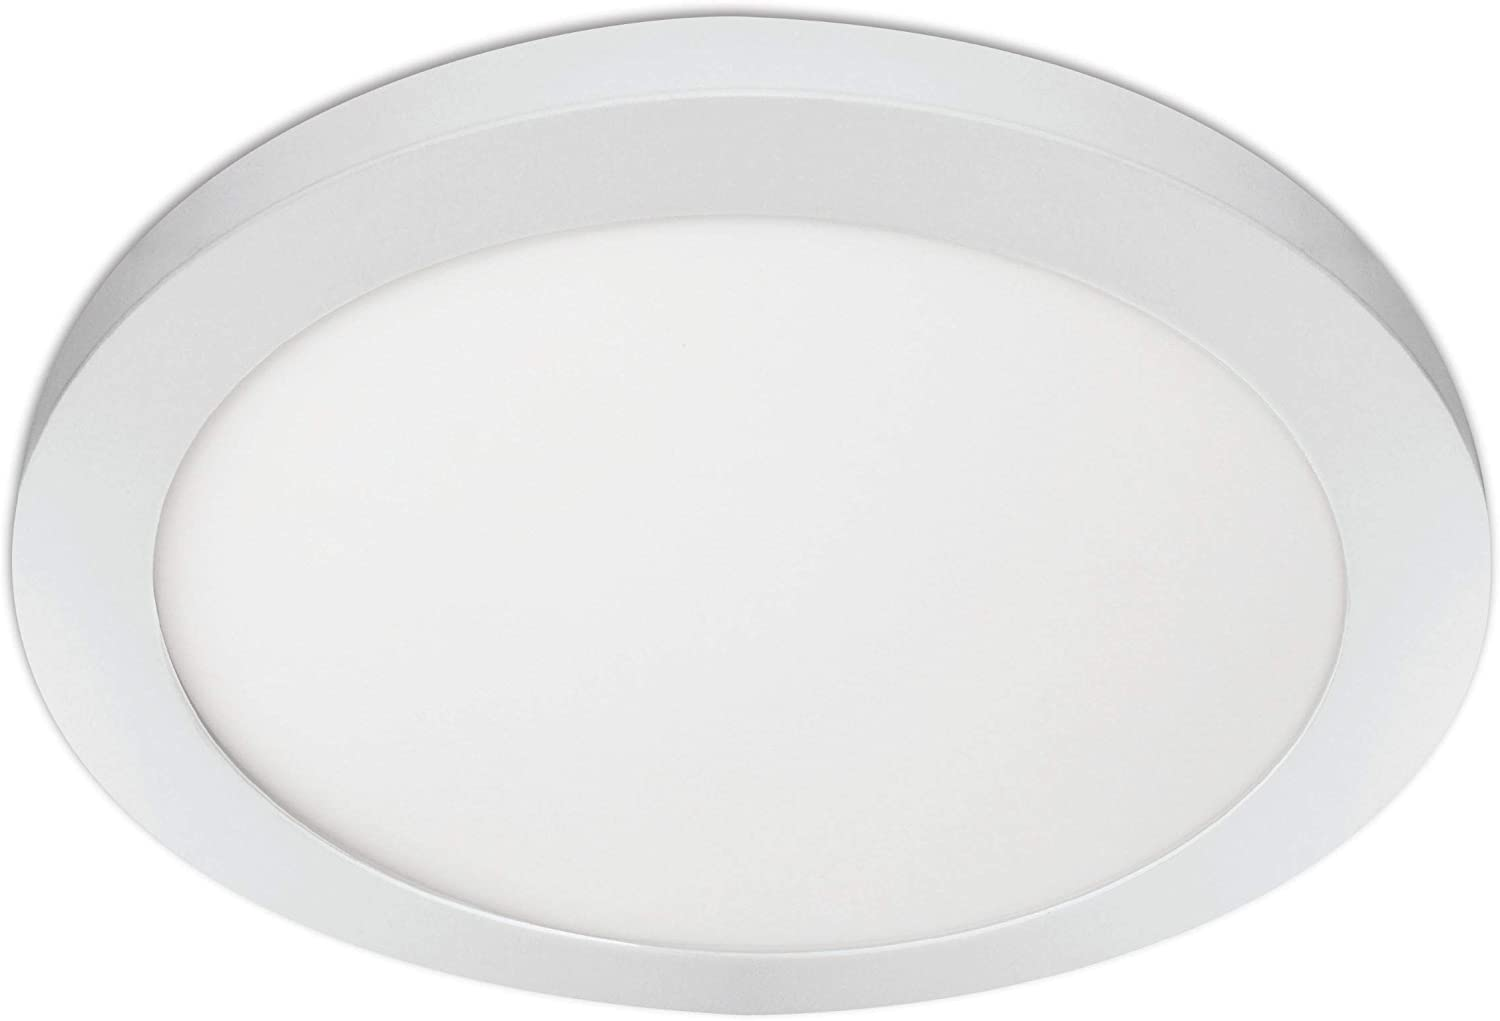 """Feit Electric 74210 11"""" Round, Edge-Lit, Color Selectable 3 in 1(Soft Bright White/Daylight) for Home, Office, Commercial LED Recessed Ceiling Flat Panel Light, 3000K/4000K/5000K"""